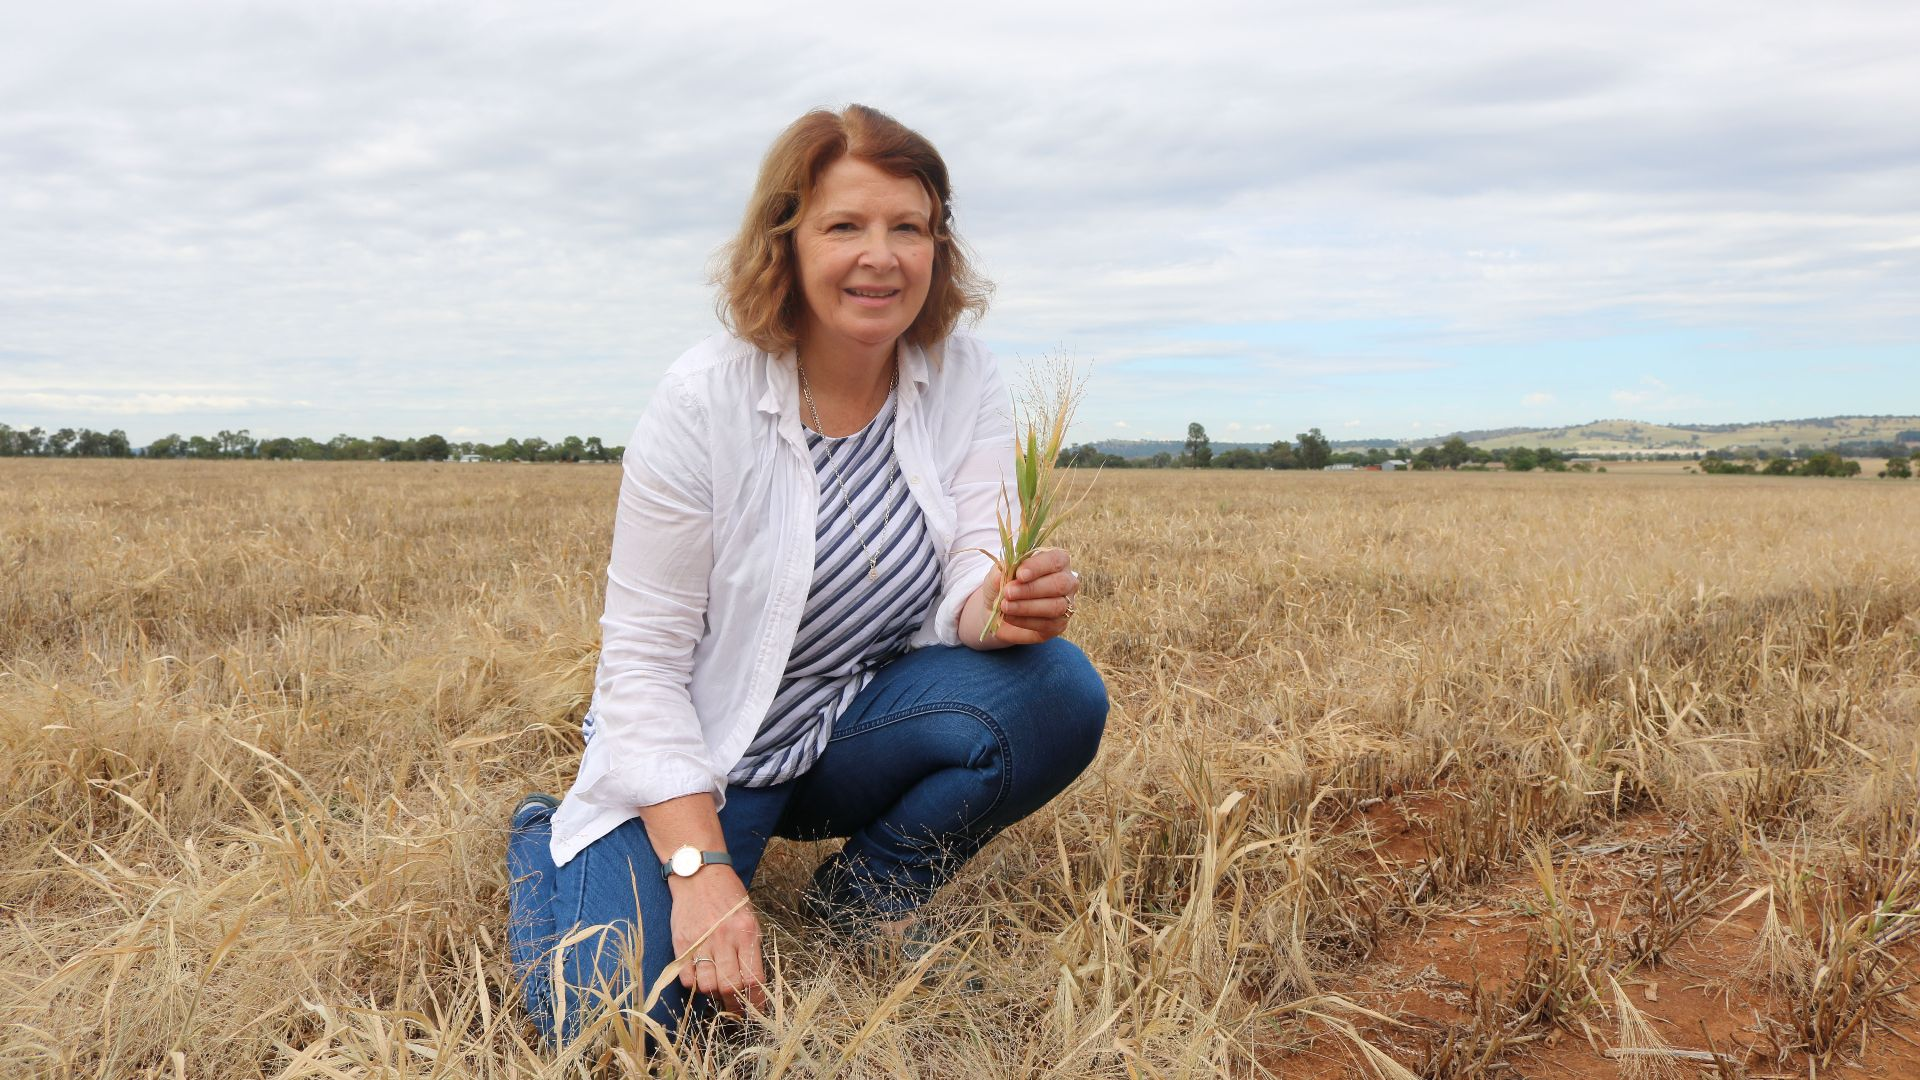 Charles Sturt research project on novel weed management identifies tactics for mixed farming systems